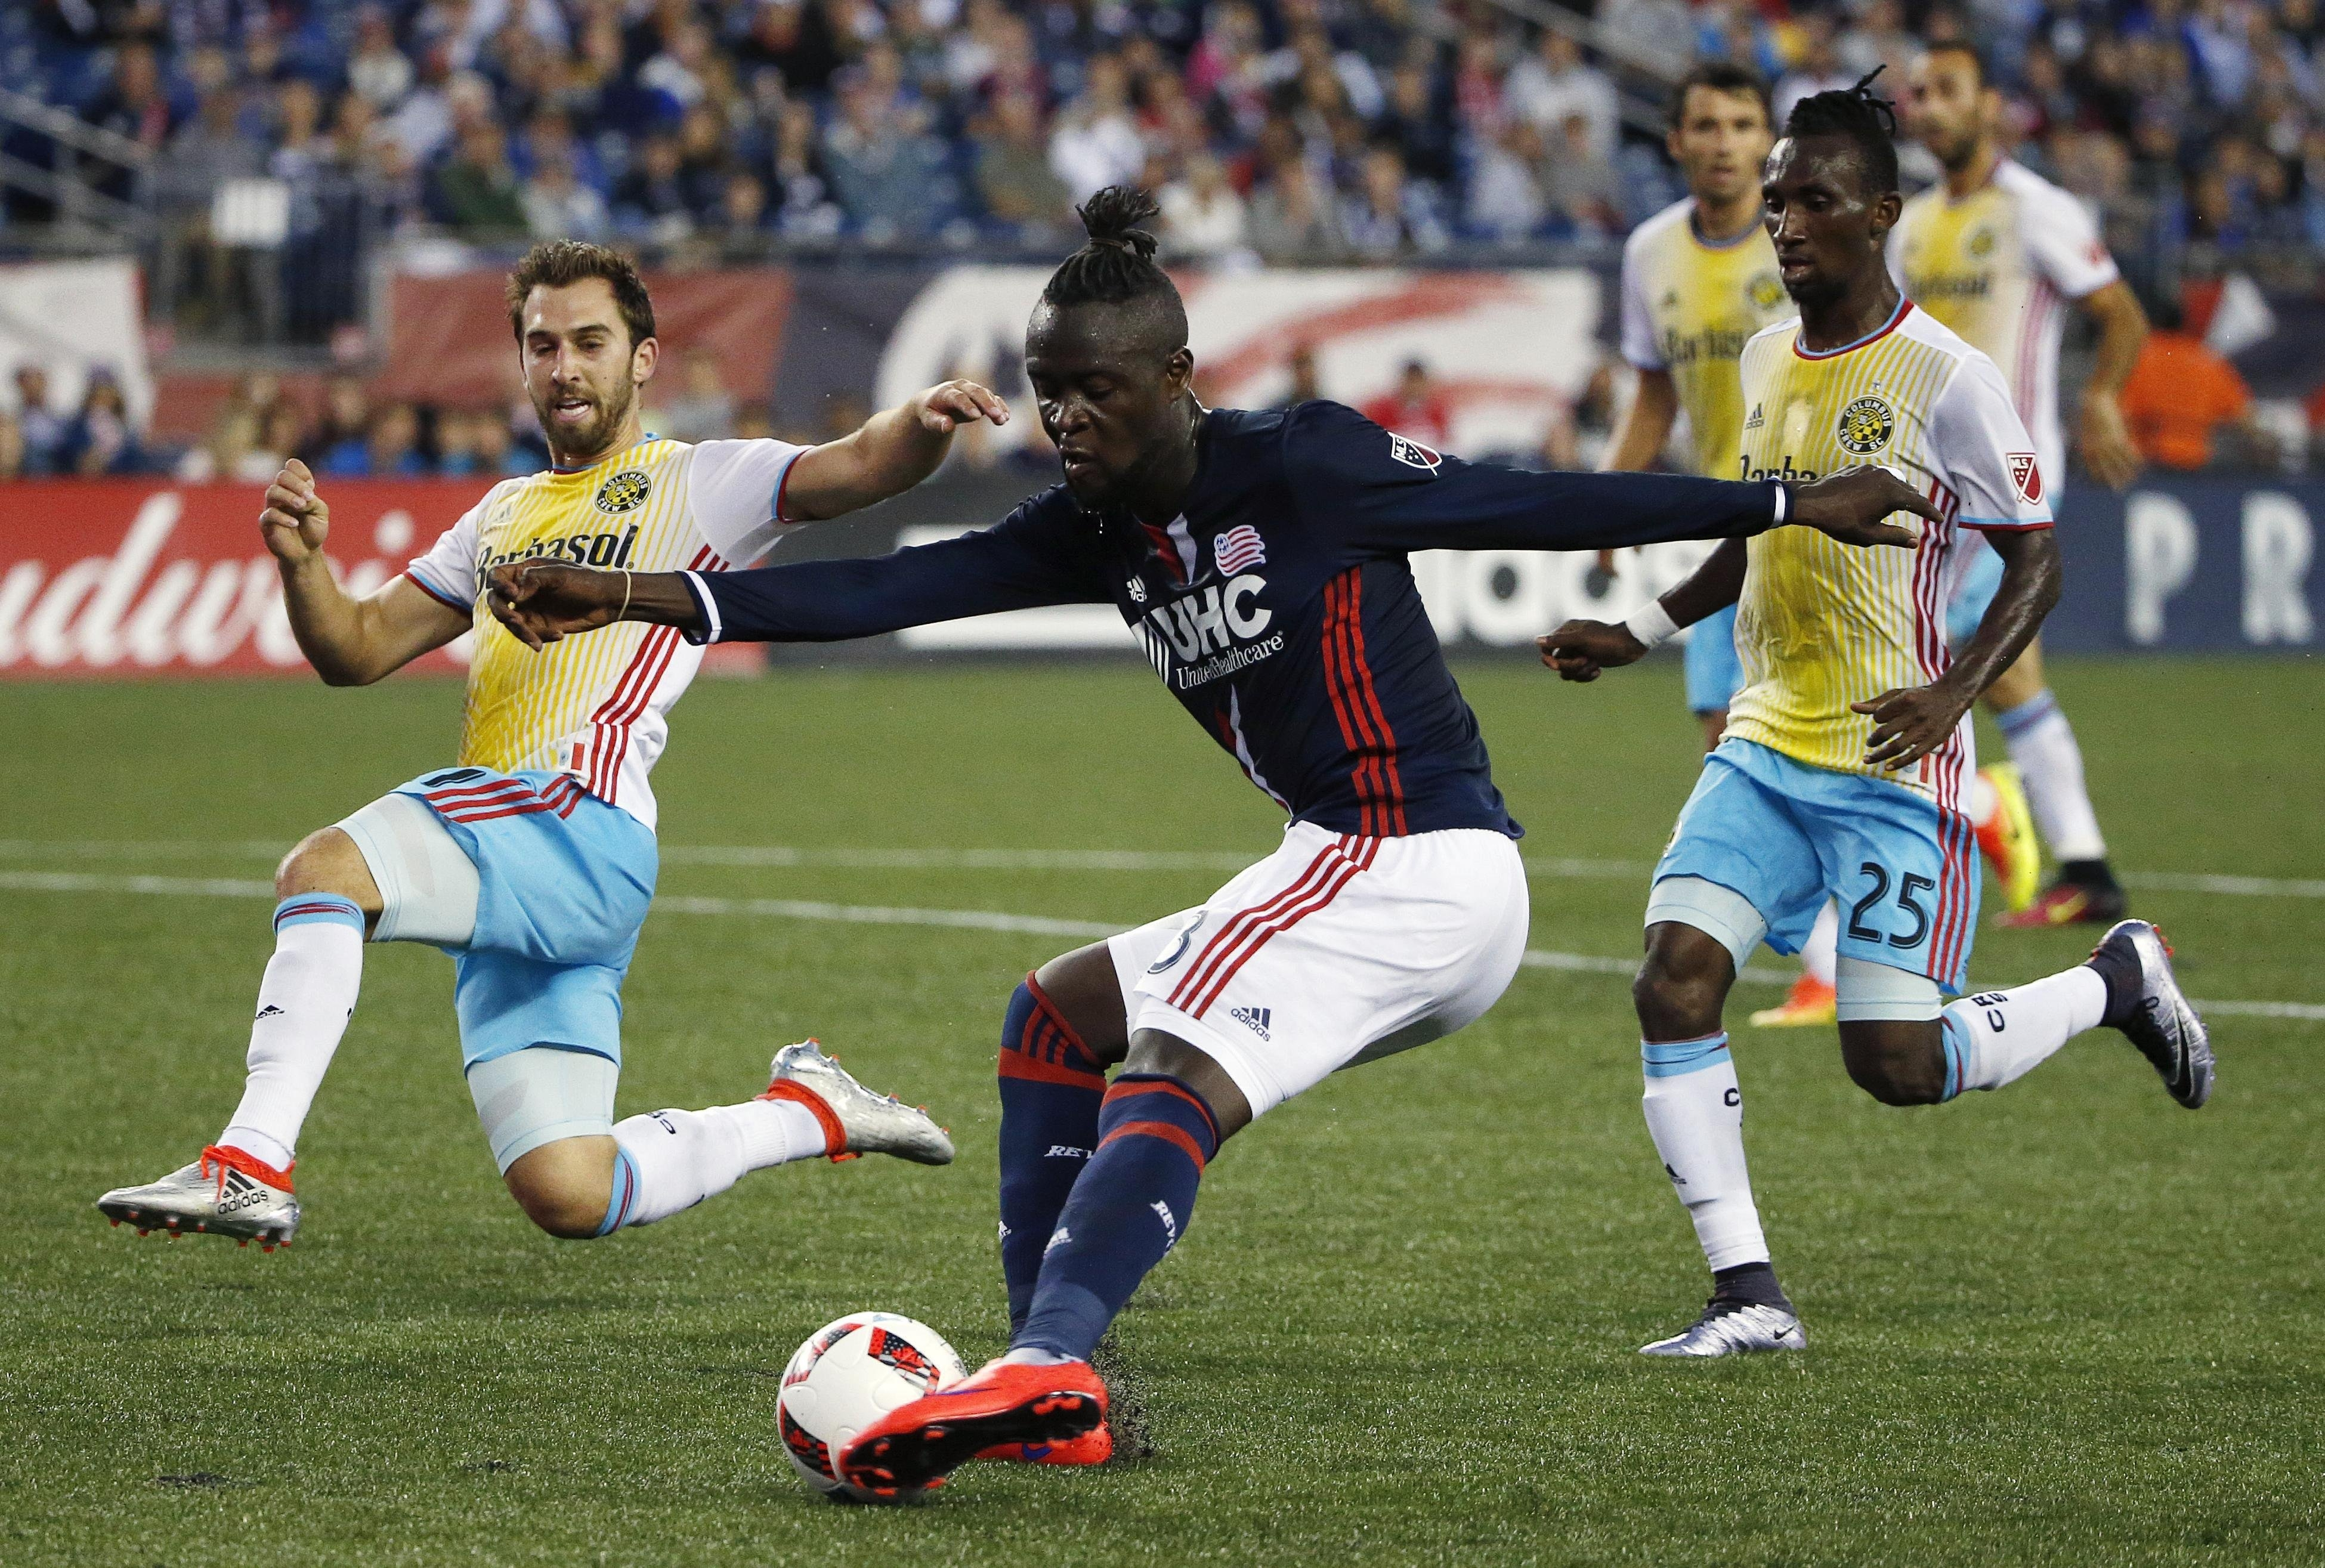 Kamara's Revs to host Chicago Fire in U.S. Open Cup semi-final